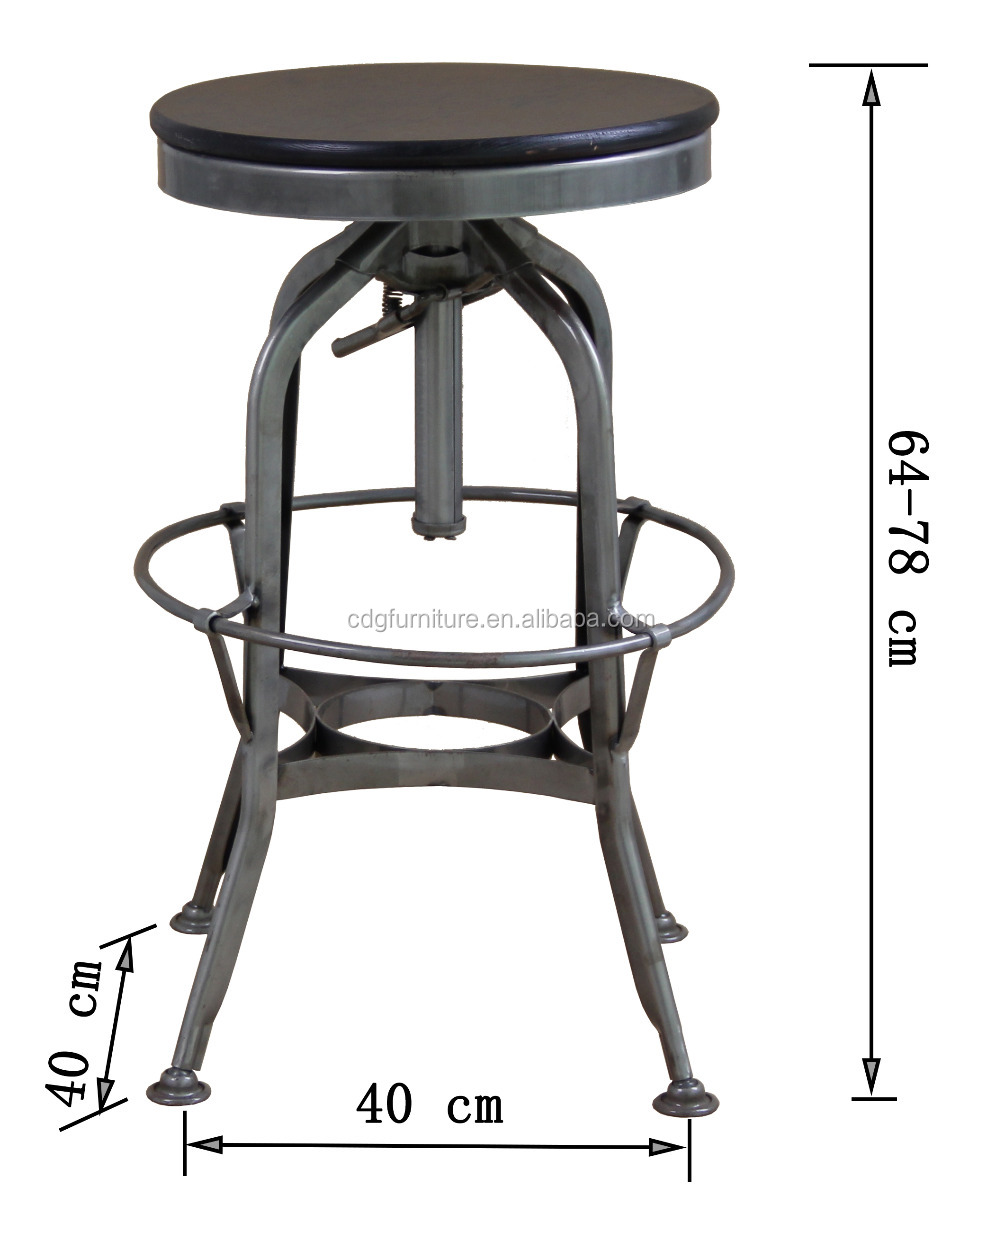 26 inch big lots lumisource bar stools View lumisource  : HTB12KWGJFXXXXX2XVXXq6xXFXXXF from www.cdgfurniture.com.cn size 1000 x 1239 jpeg 156kB